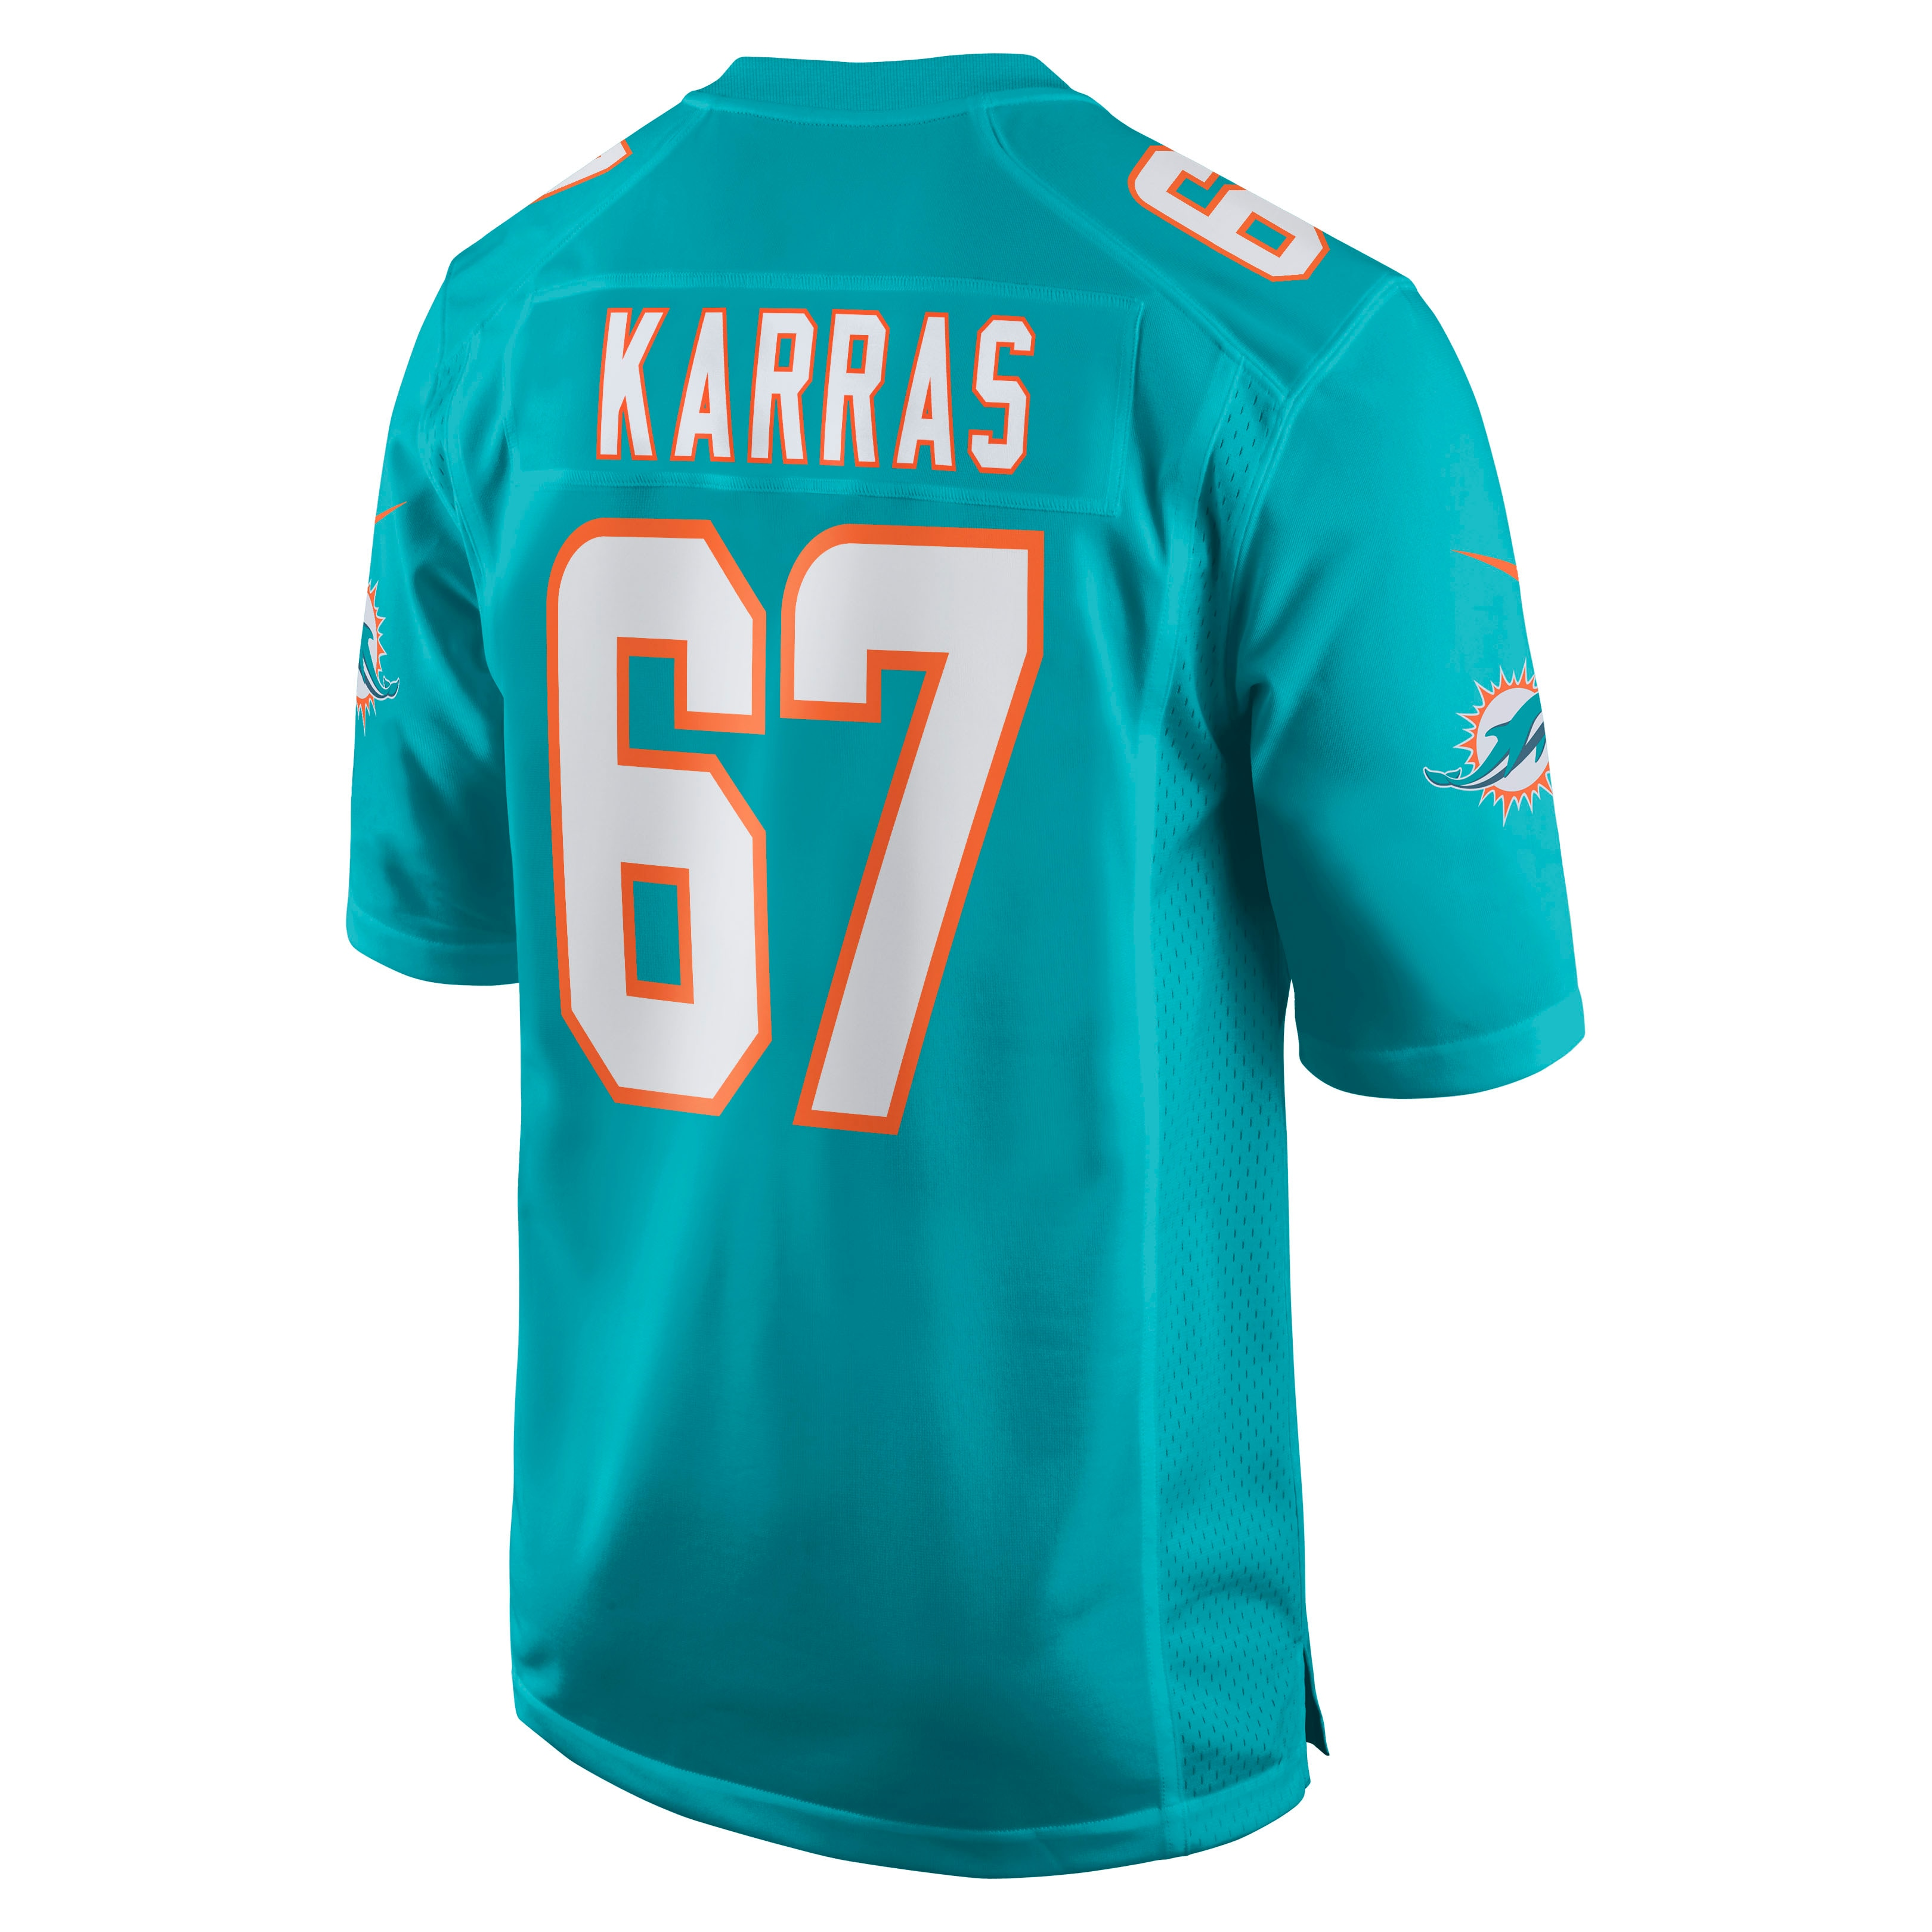 Ted Karras Jersey